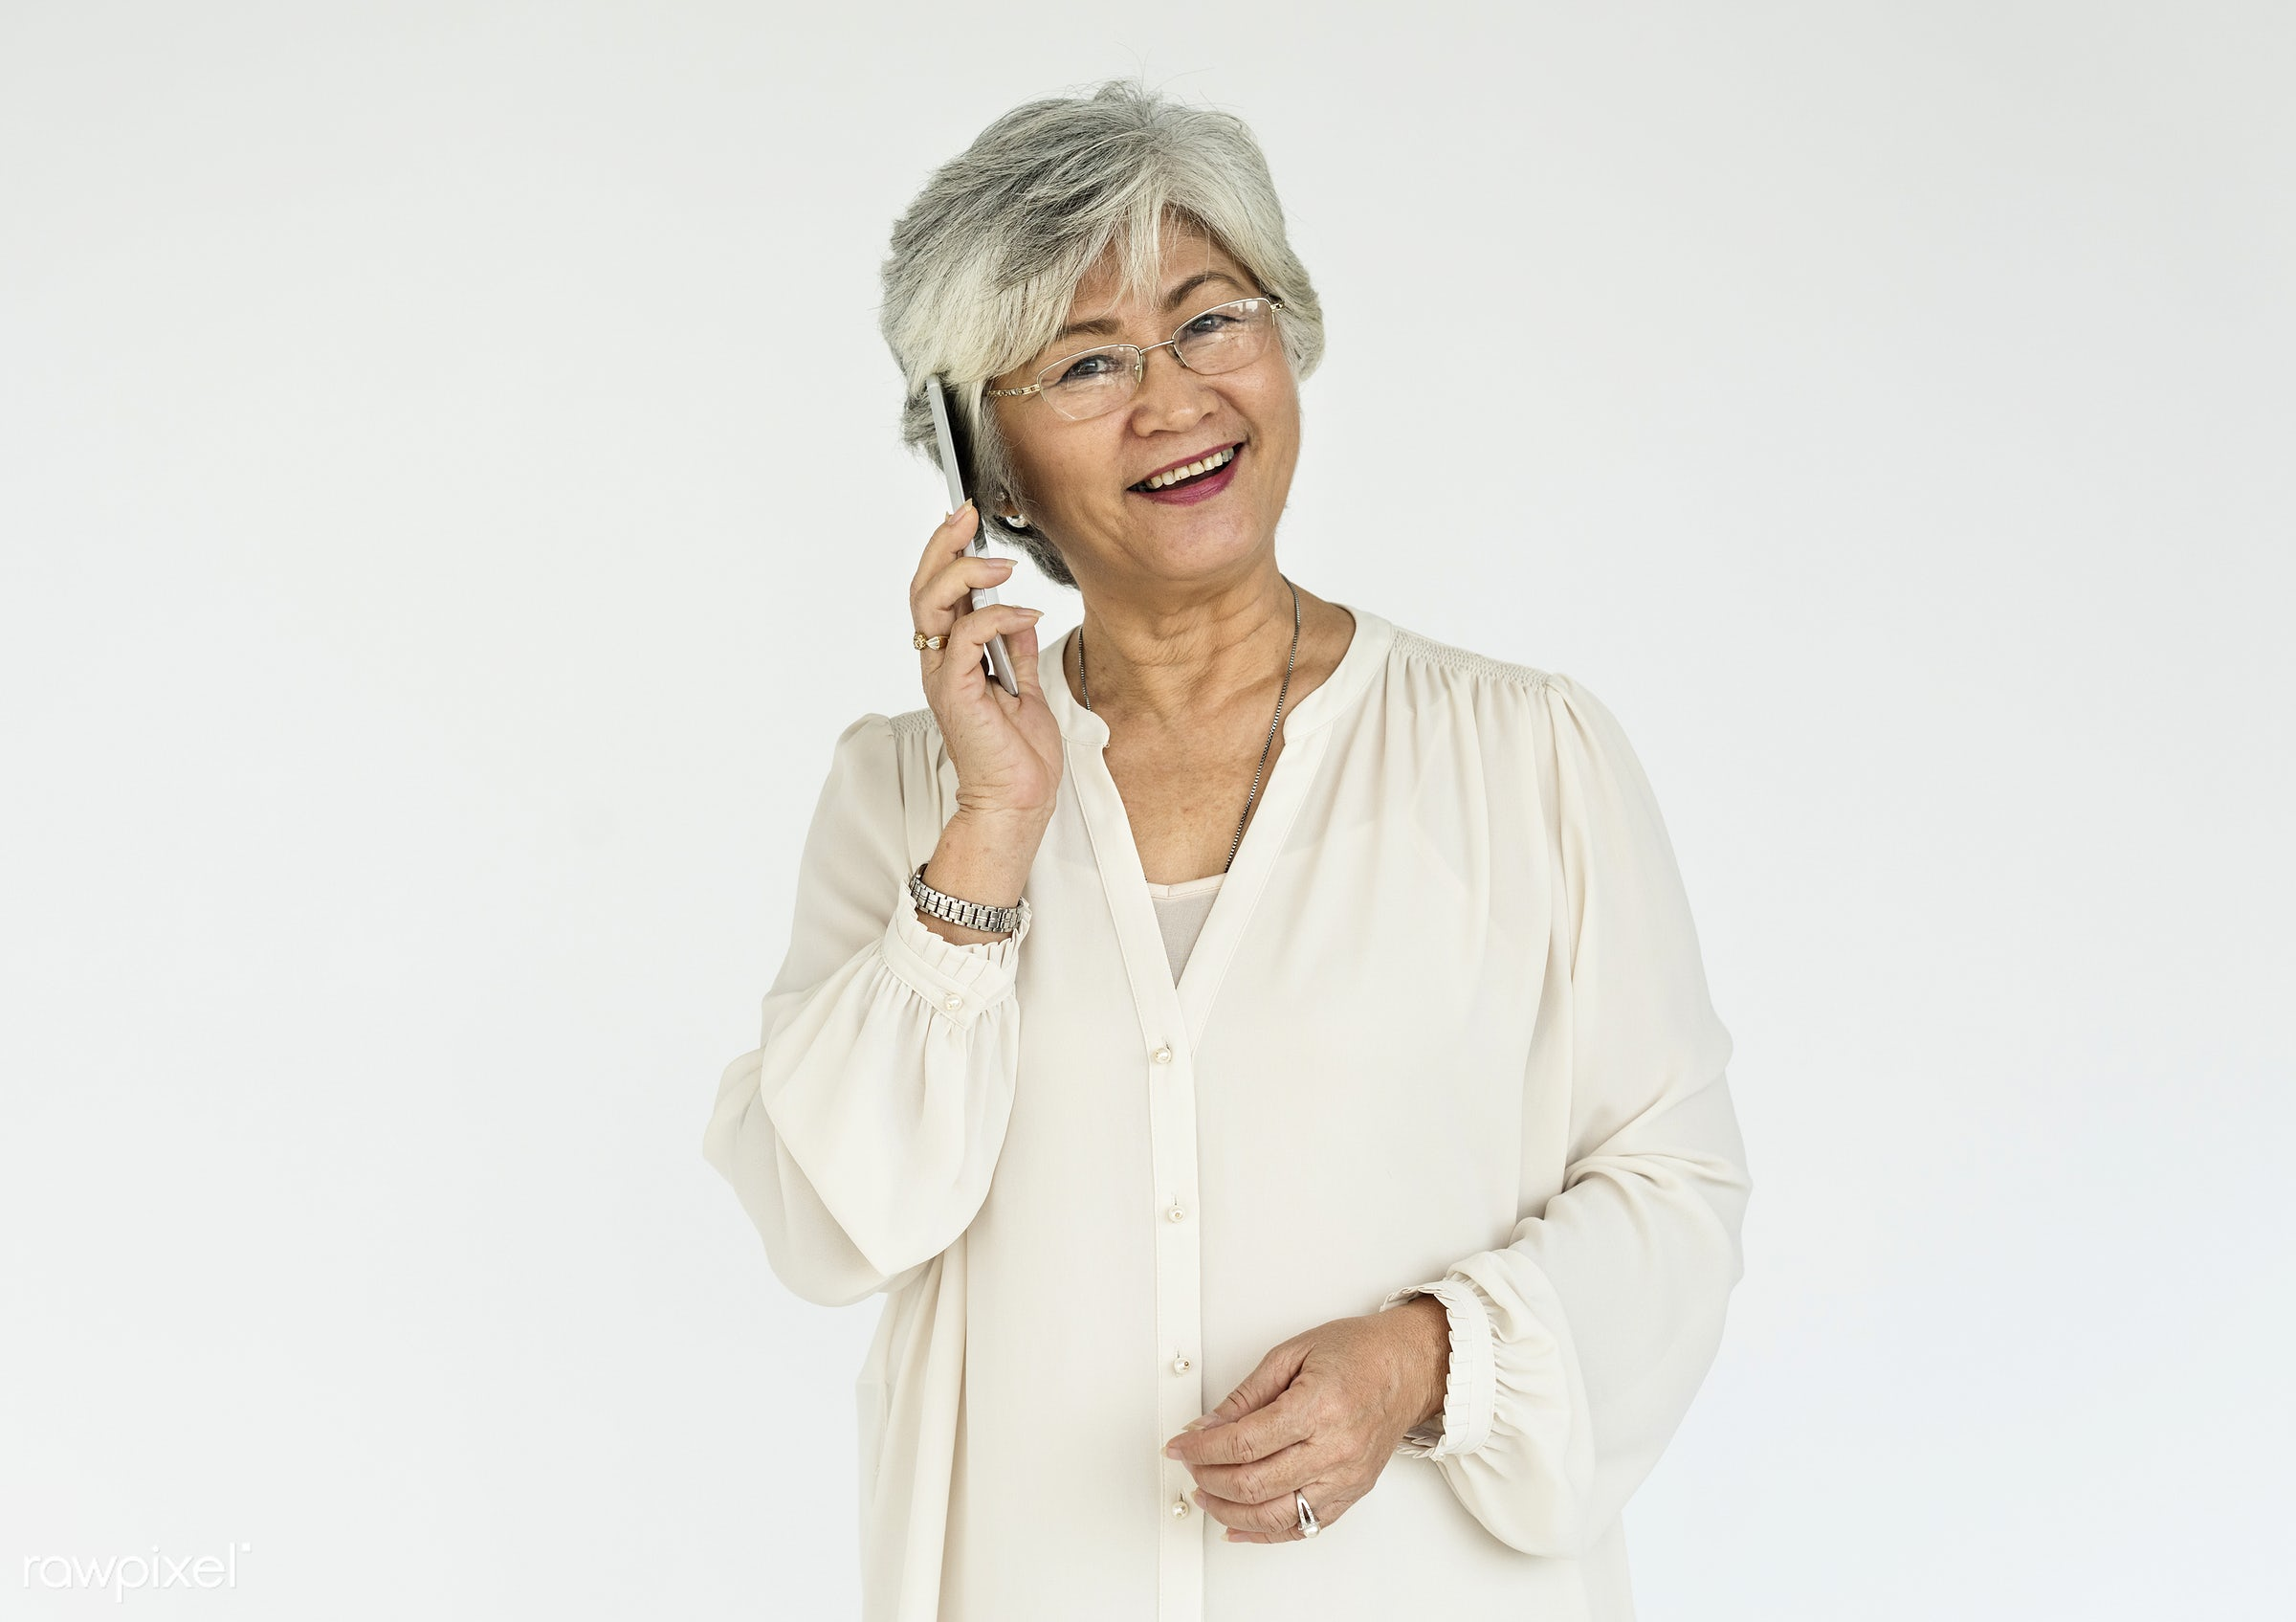 expression, studio, face, old, person, phone, isolated on white, beauty, carefree, asian, retirement, woman, casual,...